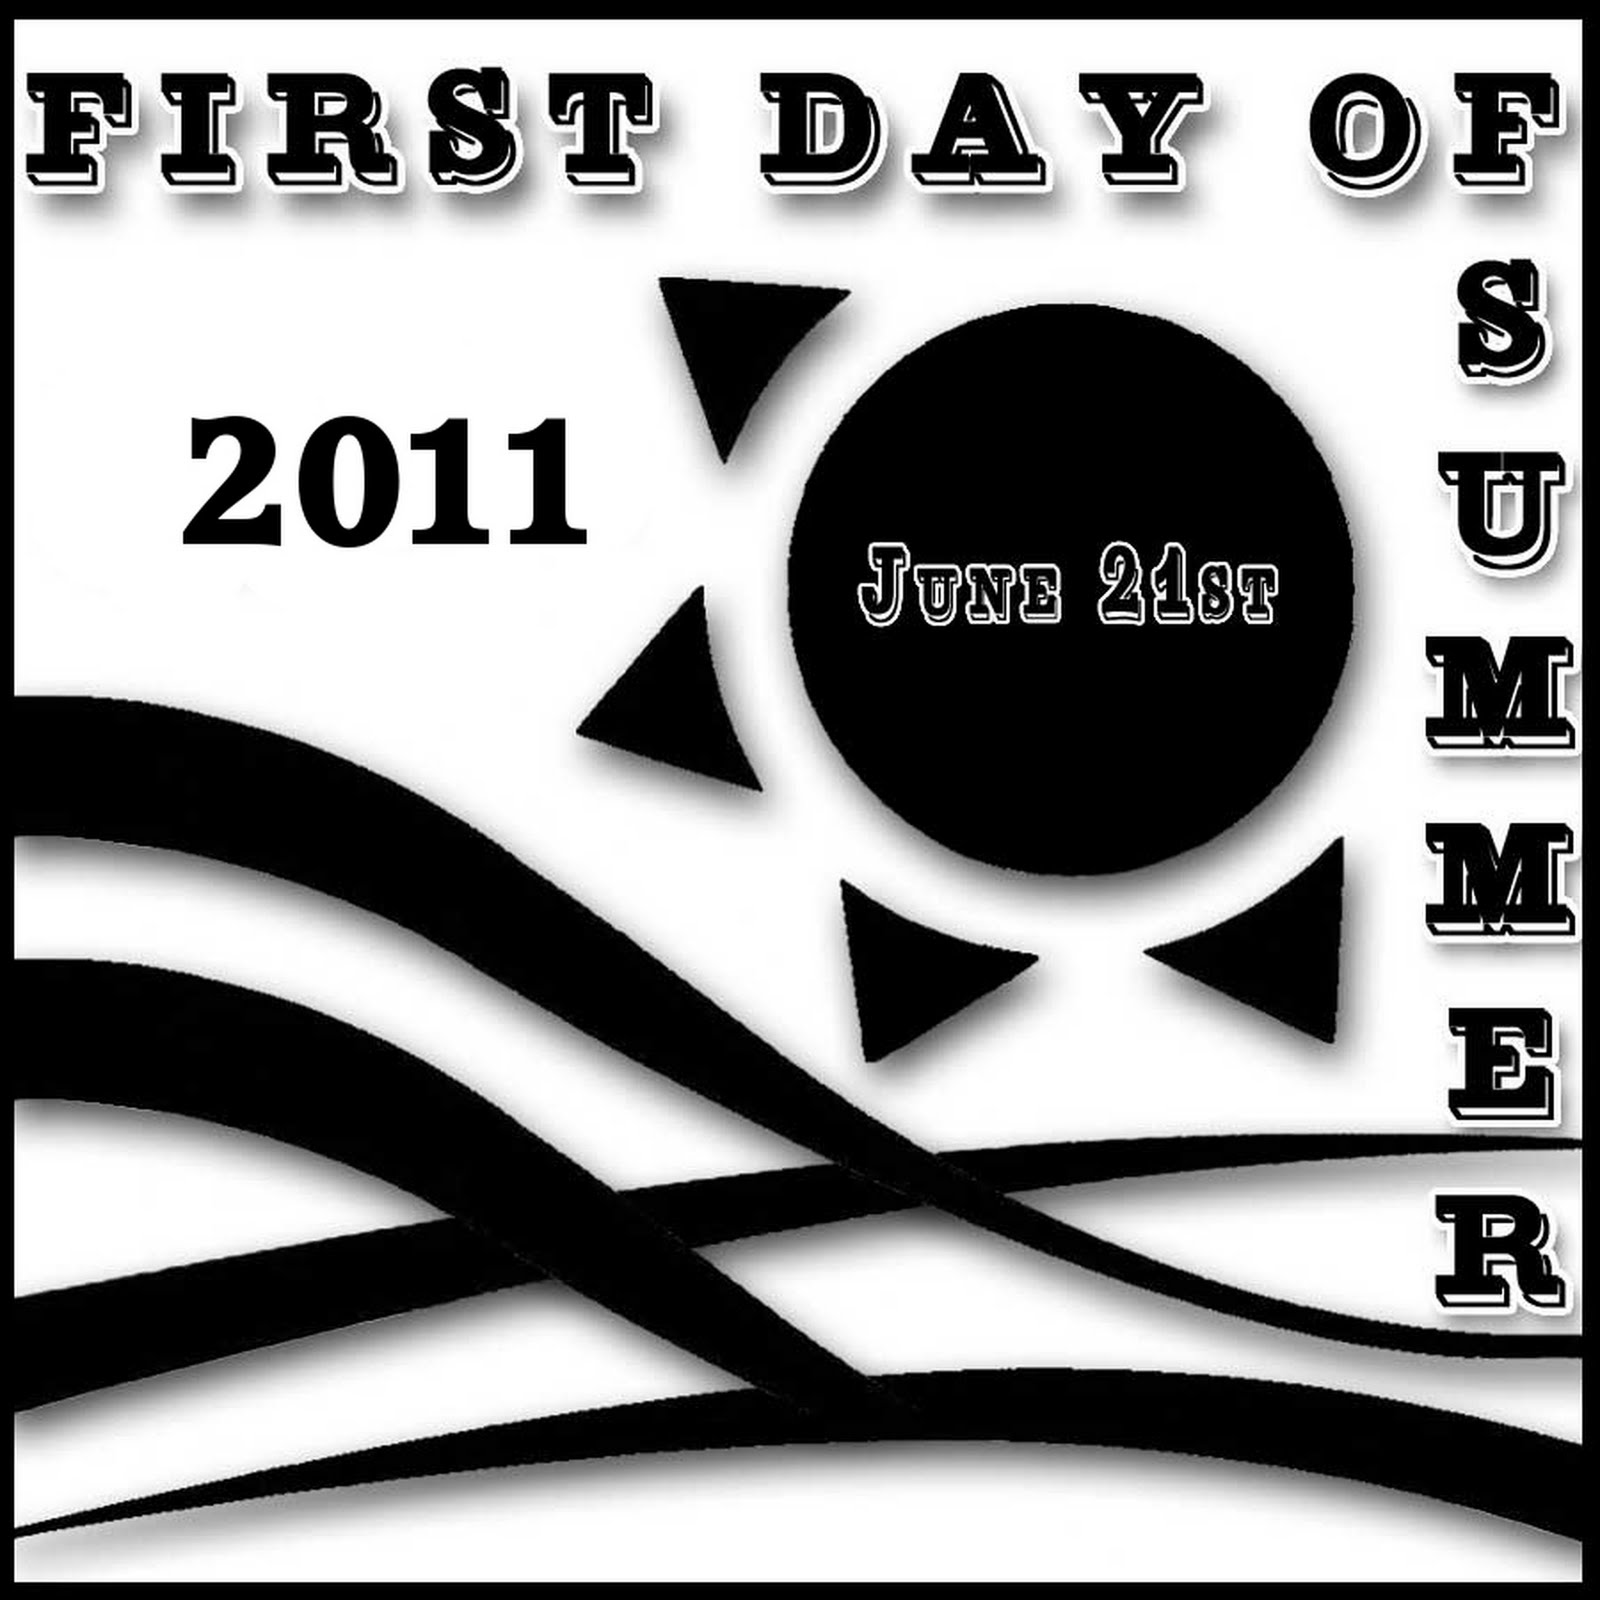 First Day of Summer Summer solstice